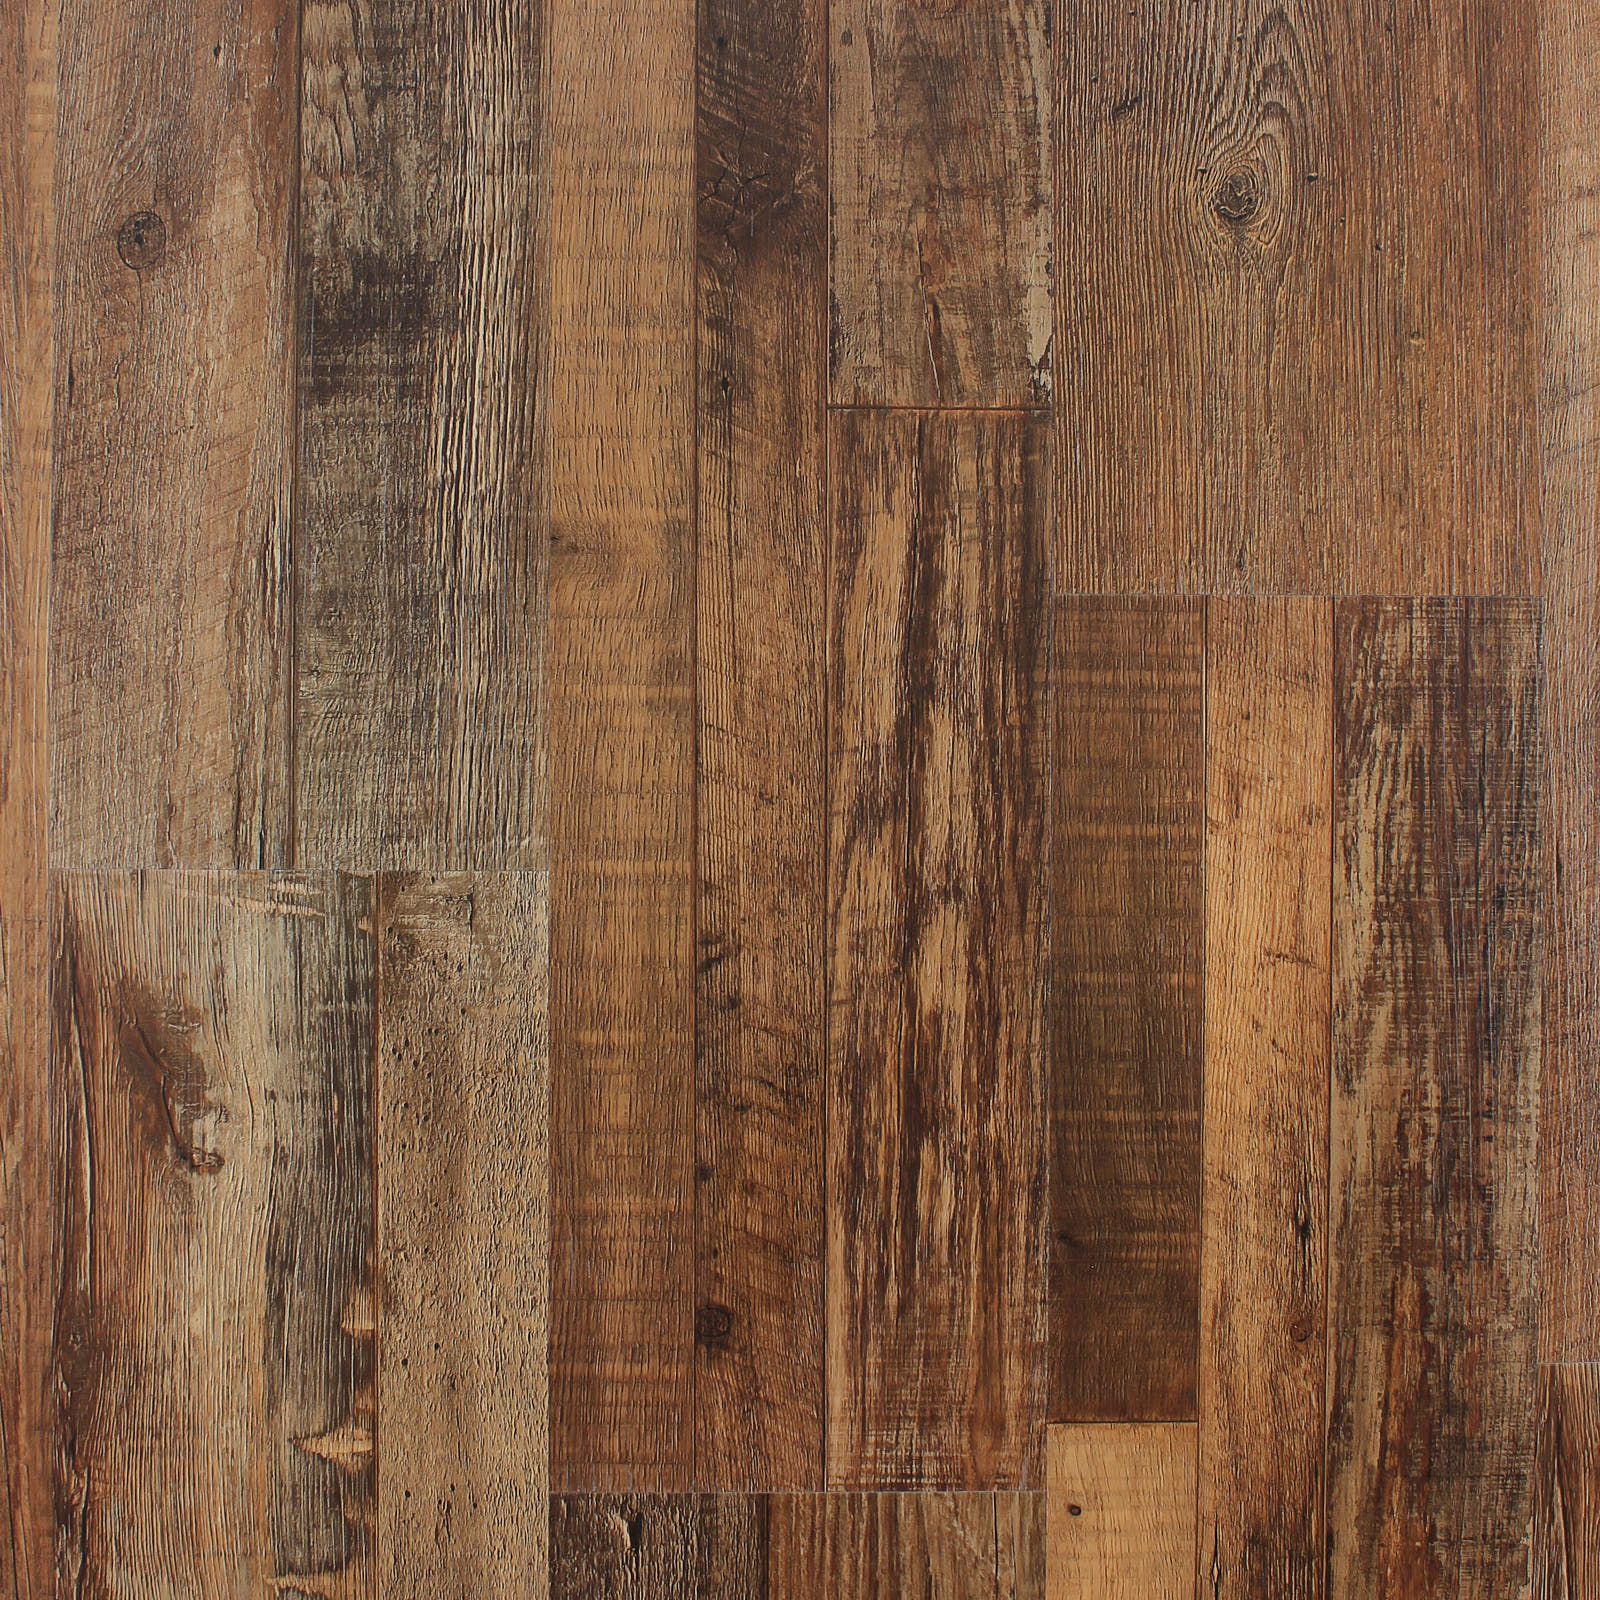 Midwest Plus Sunflower Rigid Core Vinyl Plank Flooring